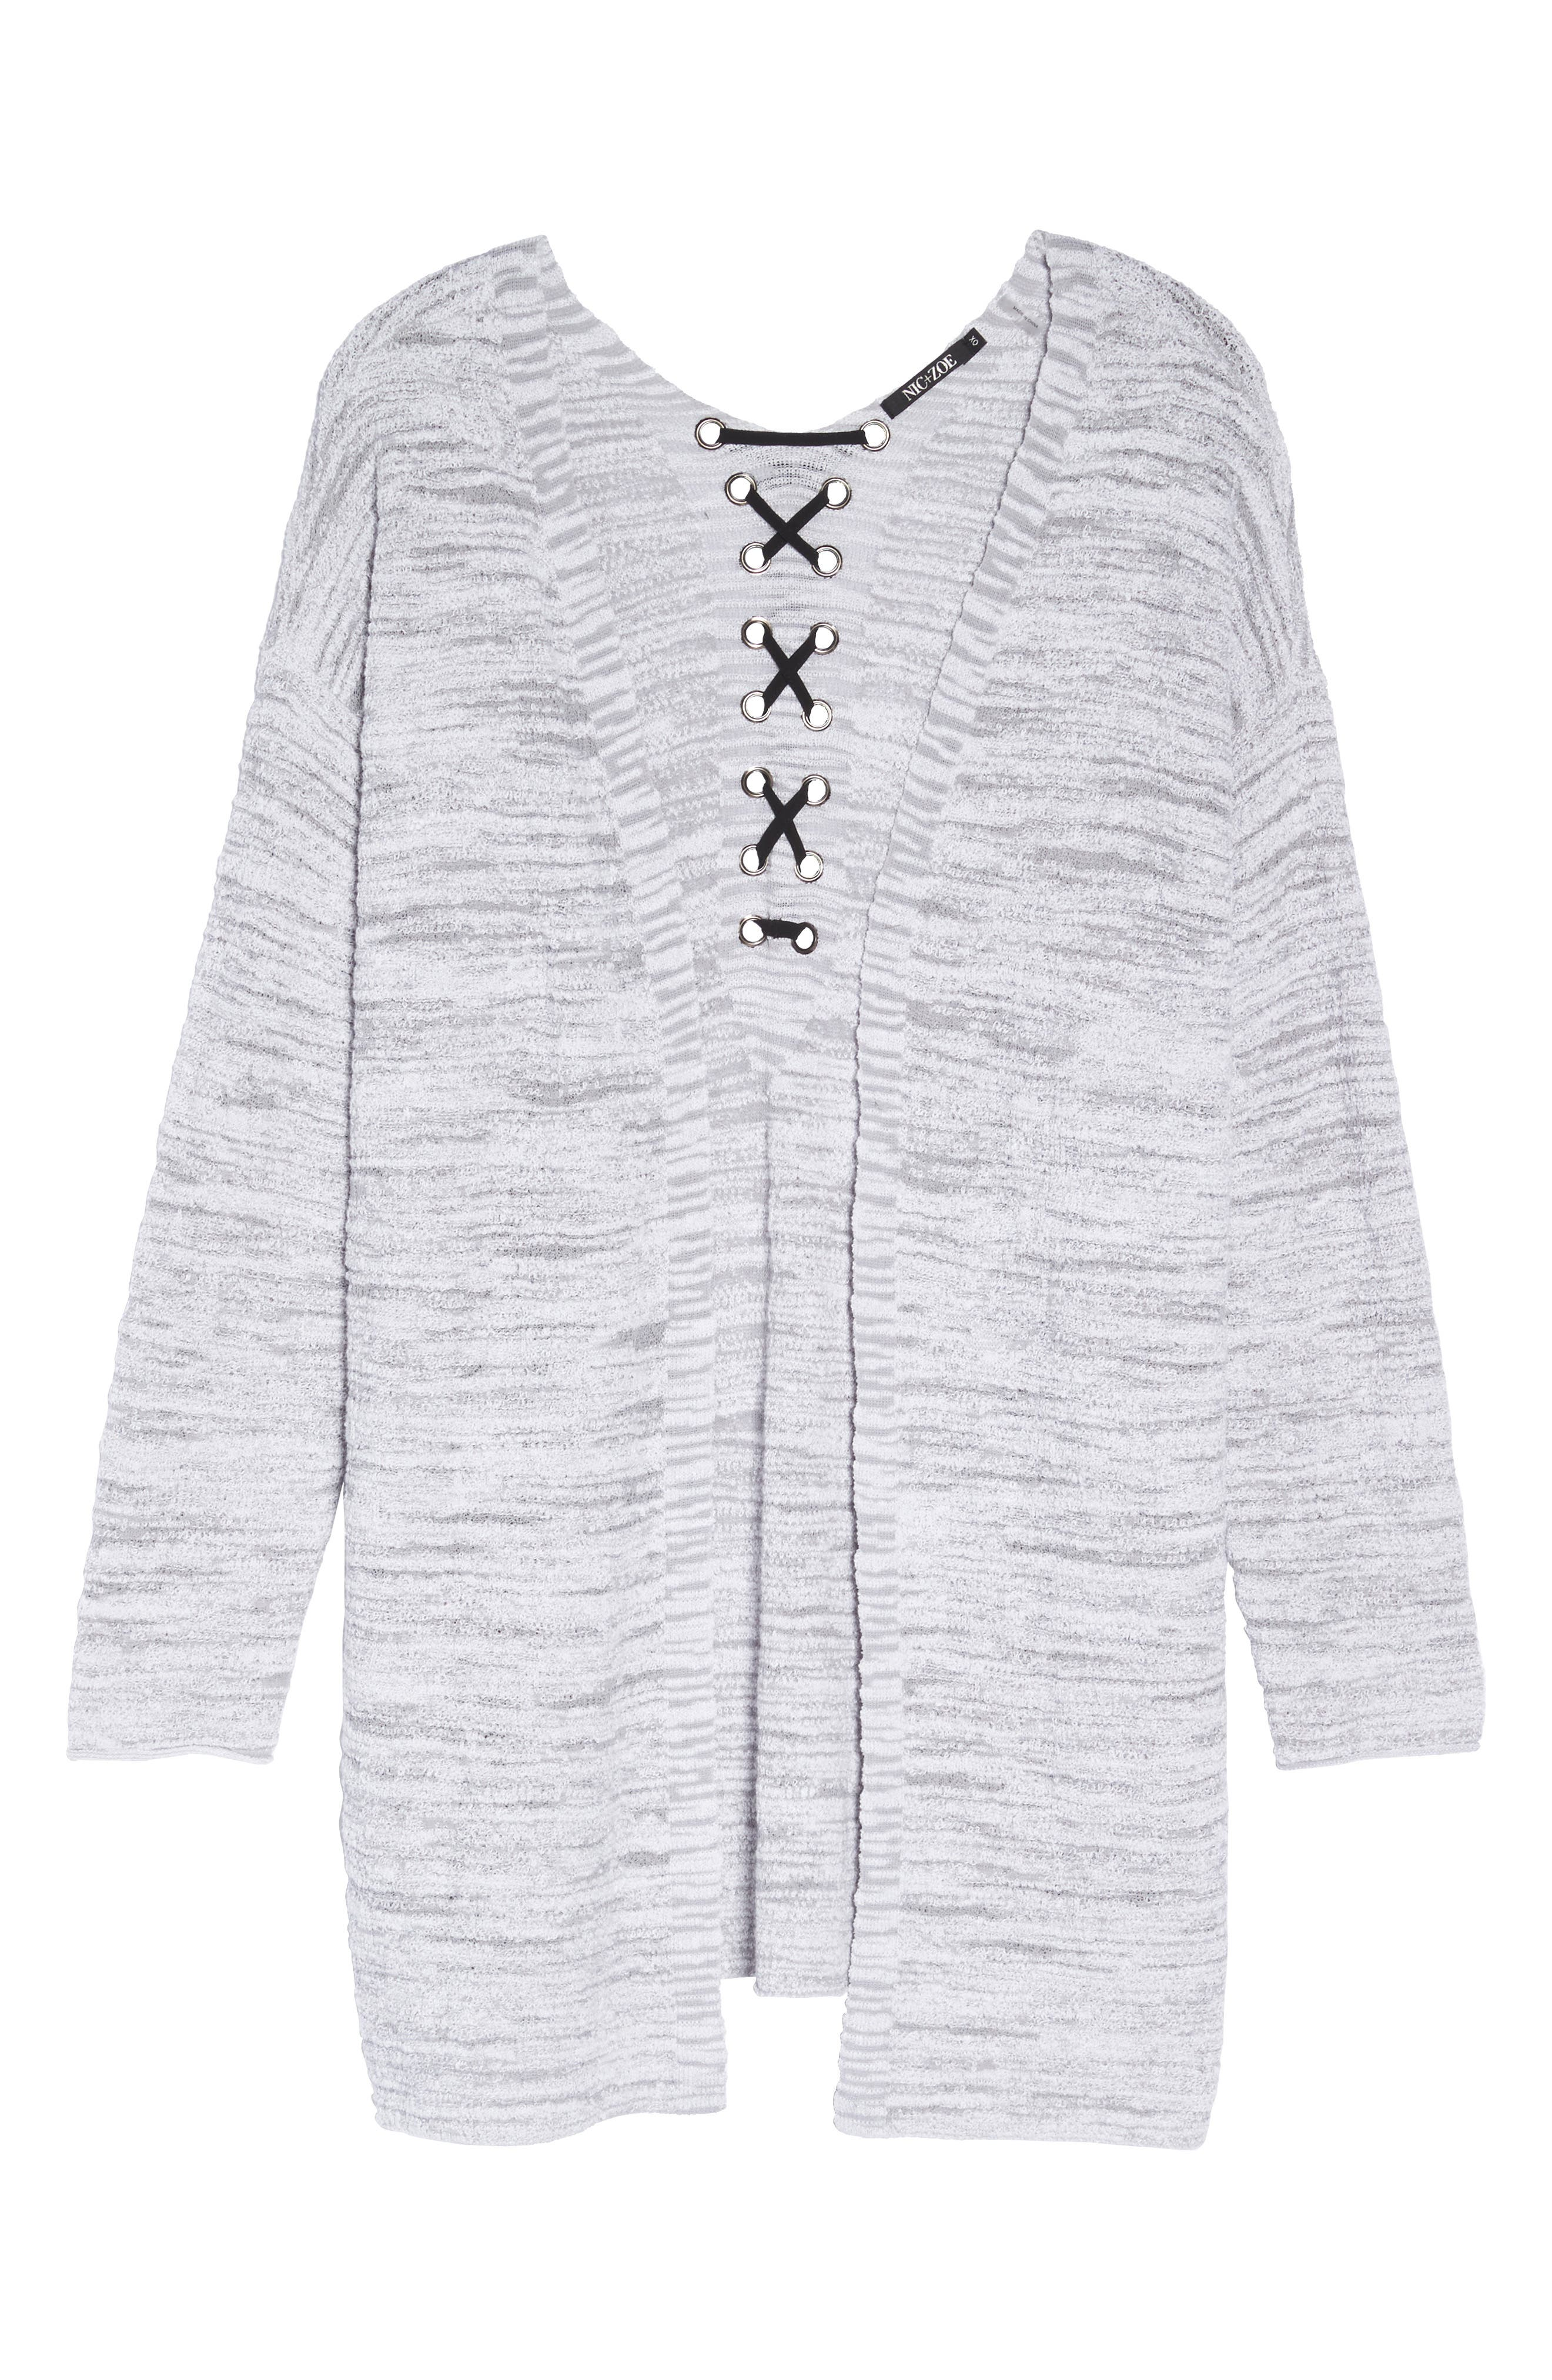 Lace It Back Cardigan,                             Alternate thumbnail 6, color,                             Icy Grey